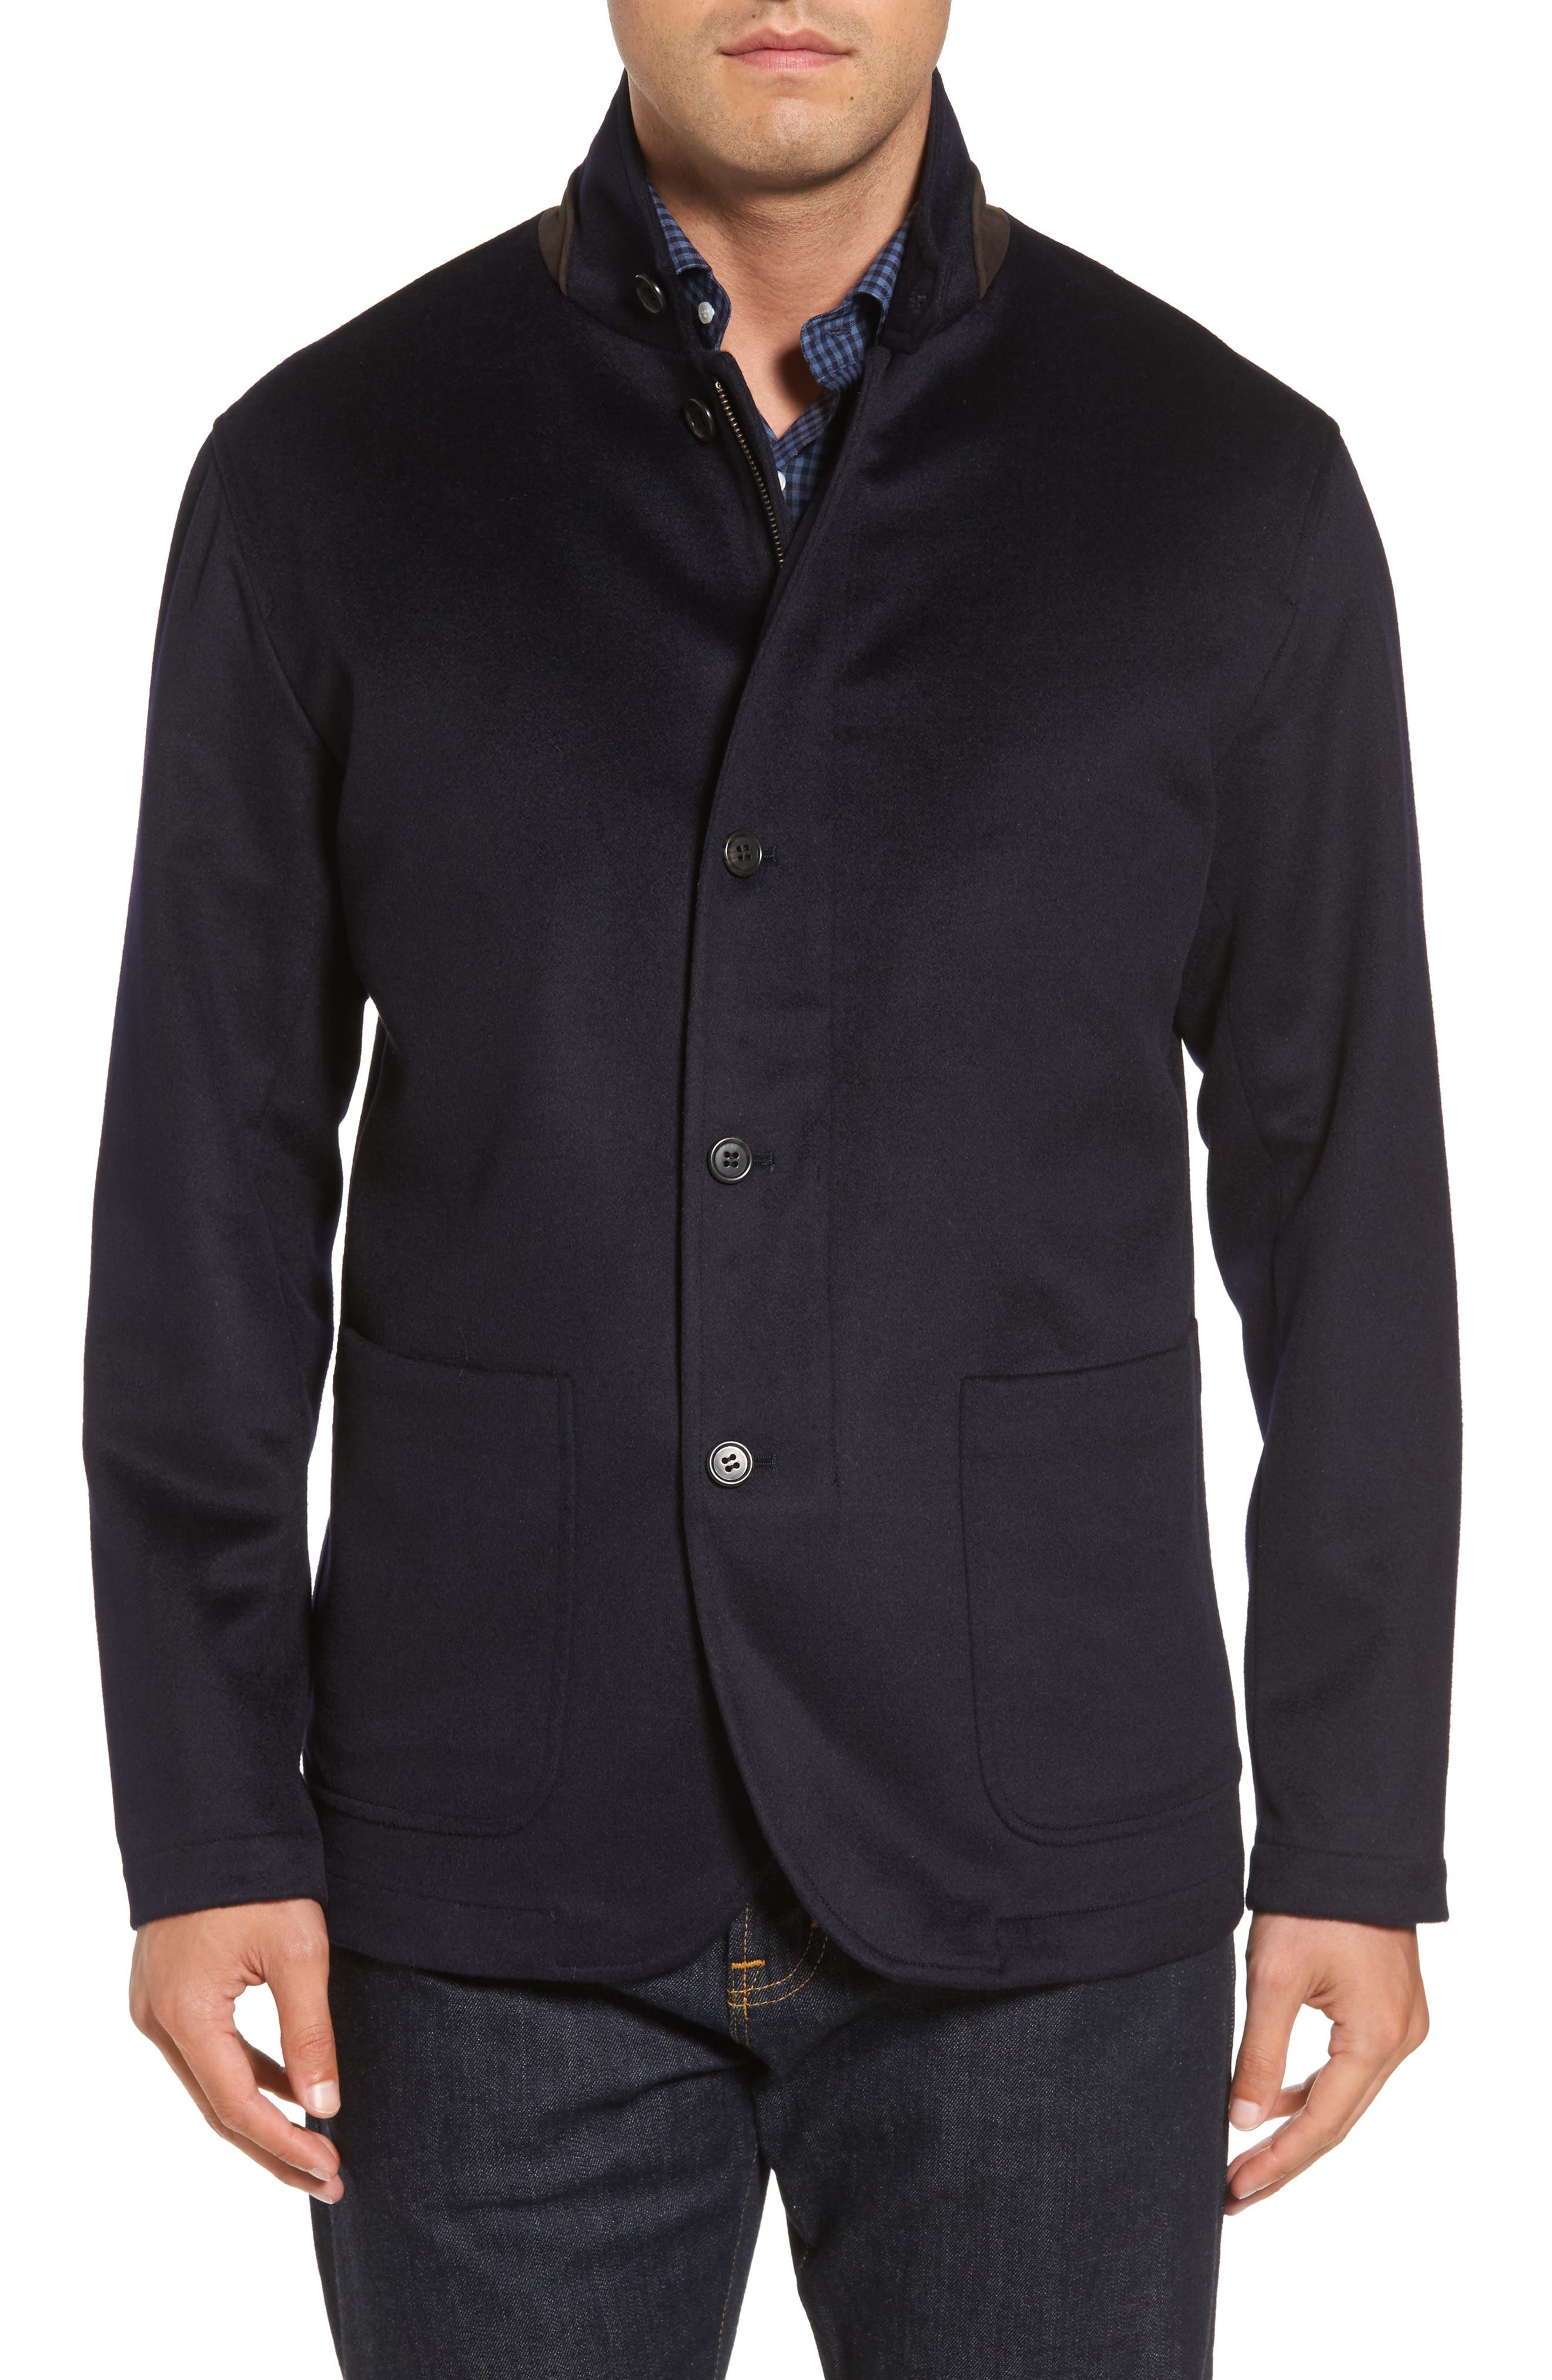 Crown Wool & Cashmere Jacket,                             Alternate thumbnail 4, color,                             410